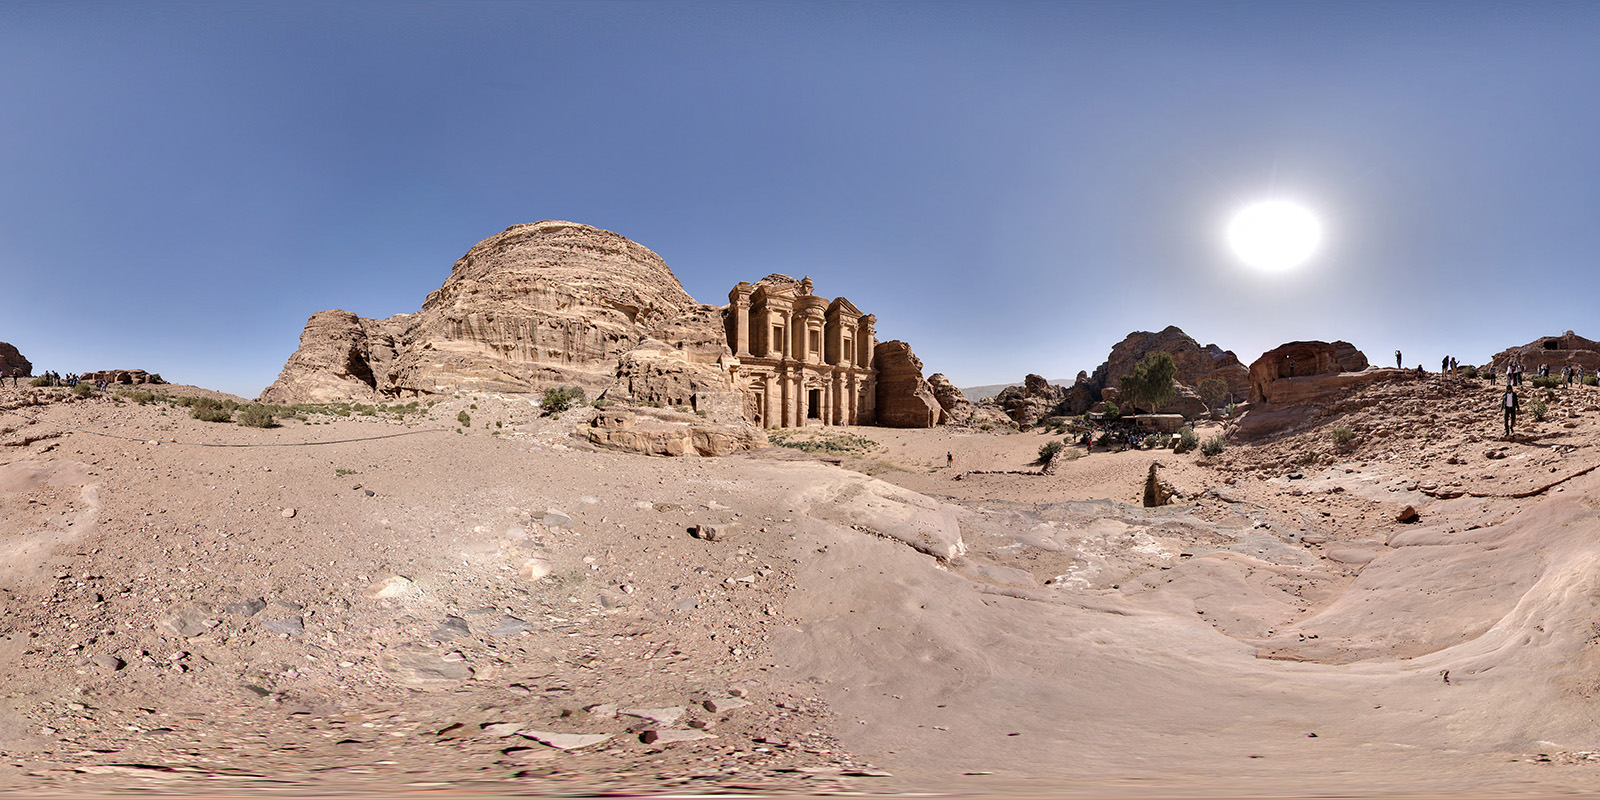 Petra26 - The Monastery, Ad Dier 1600